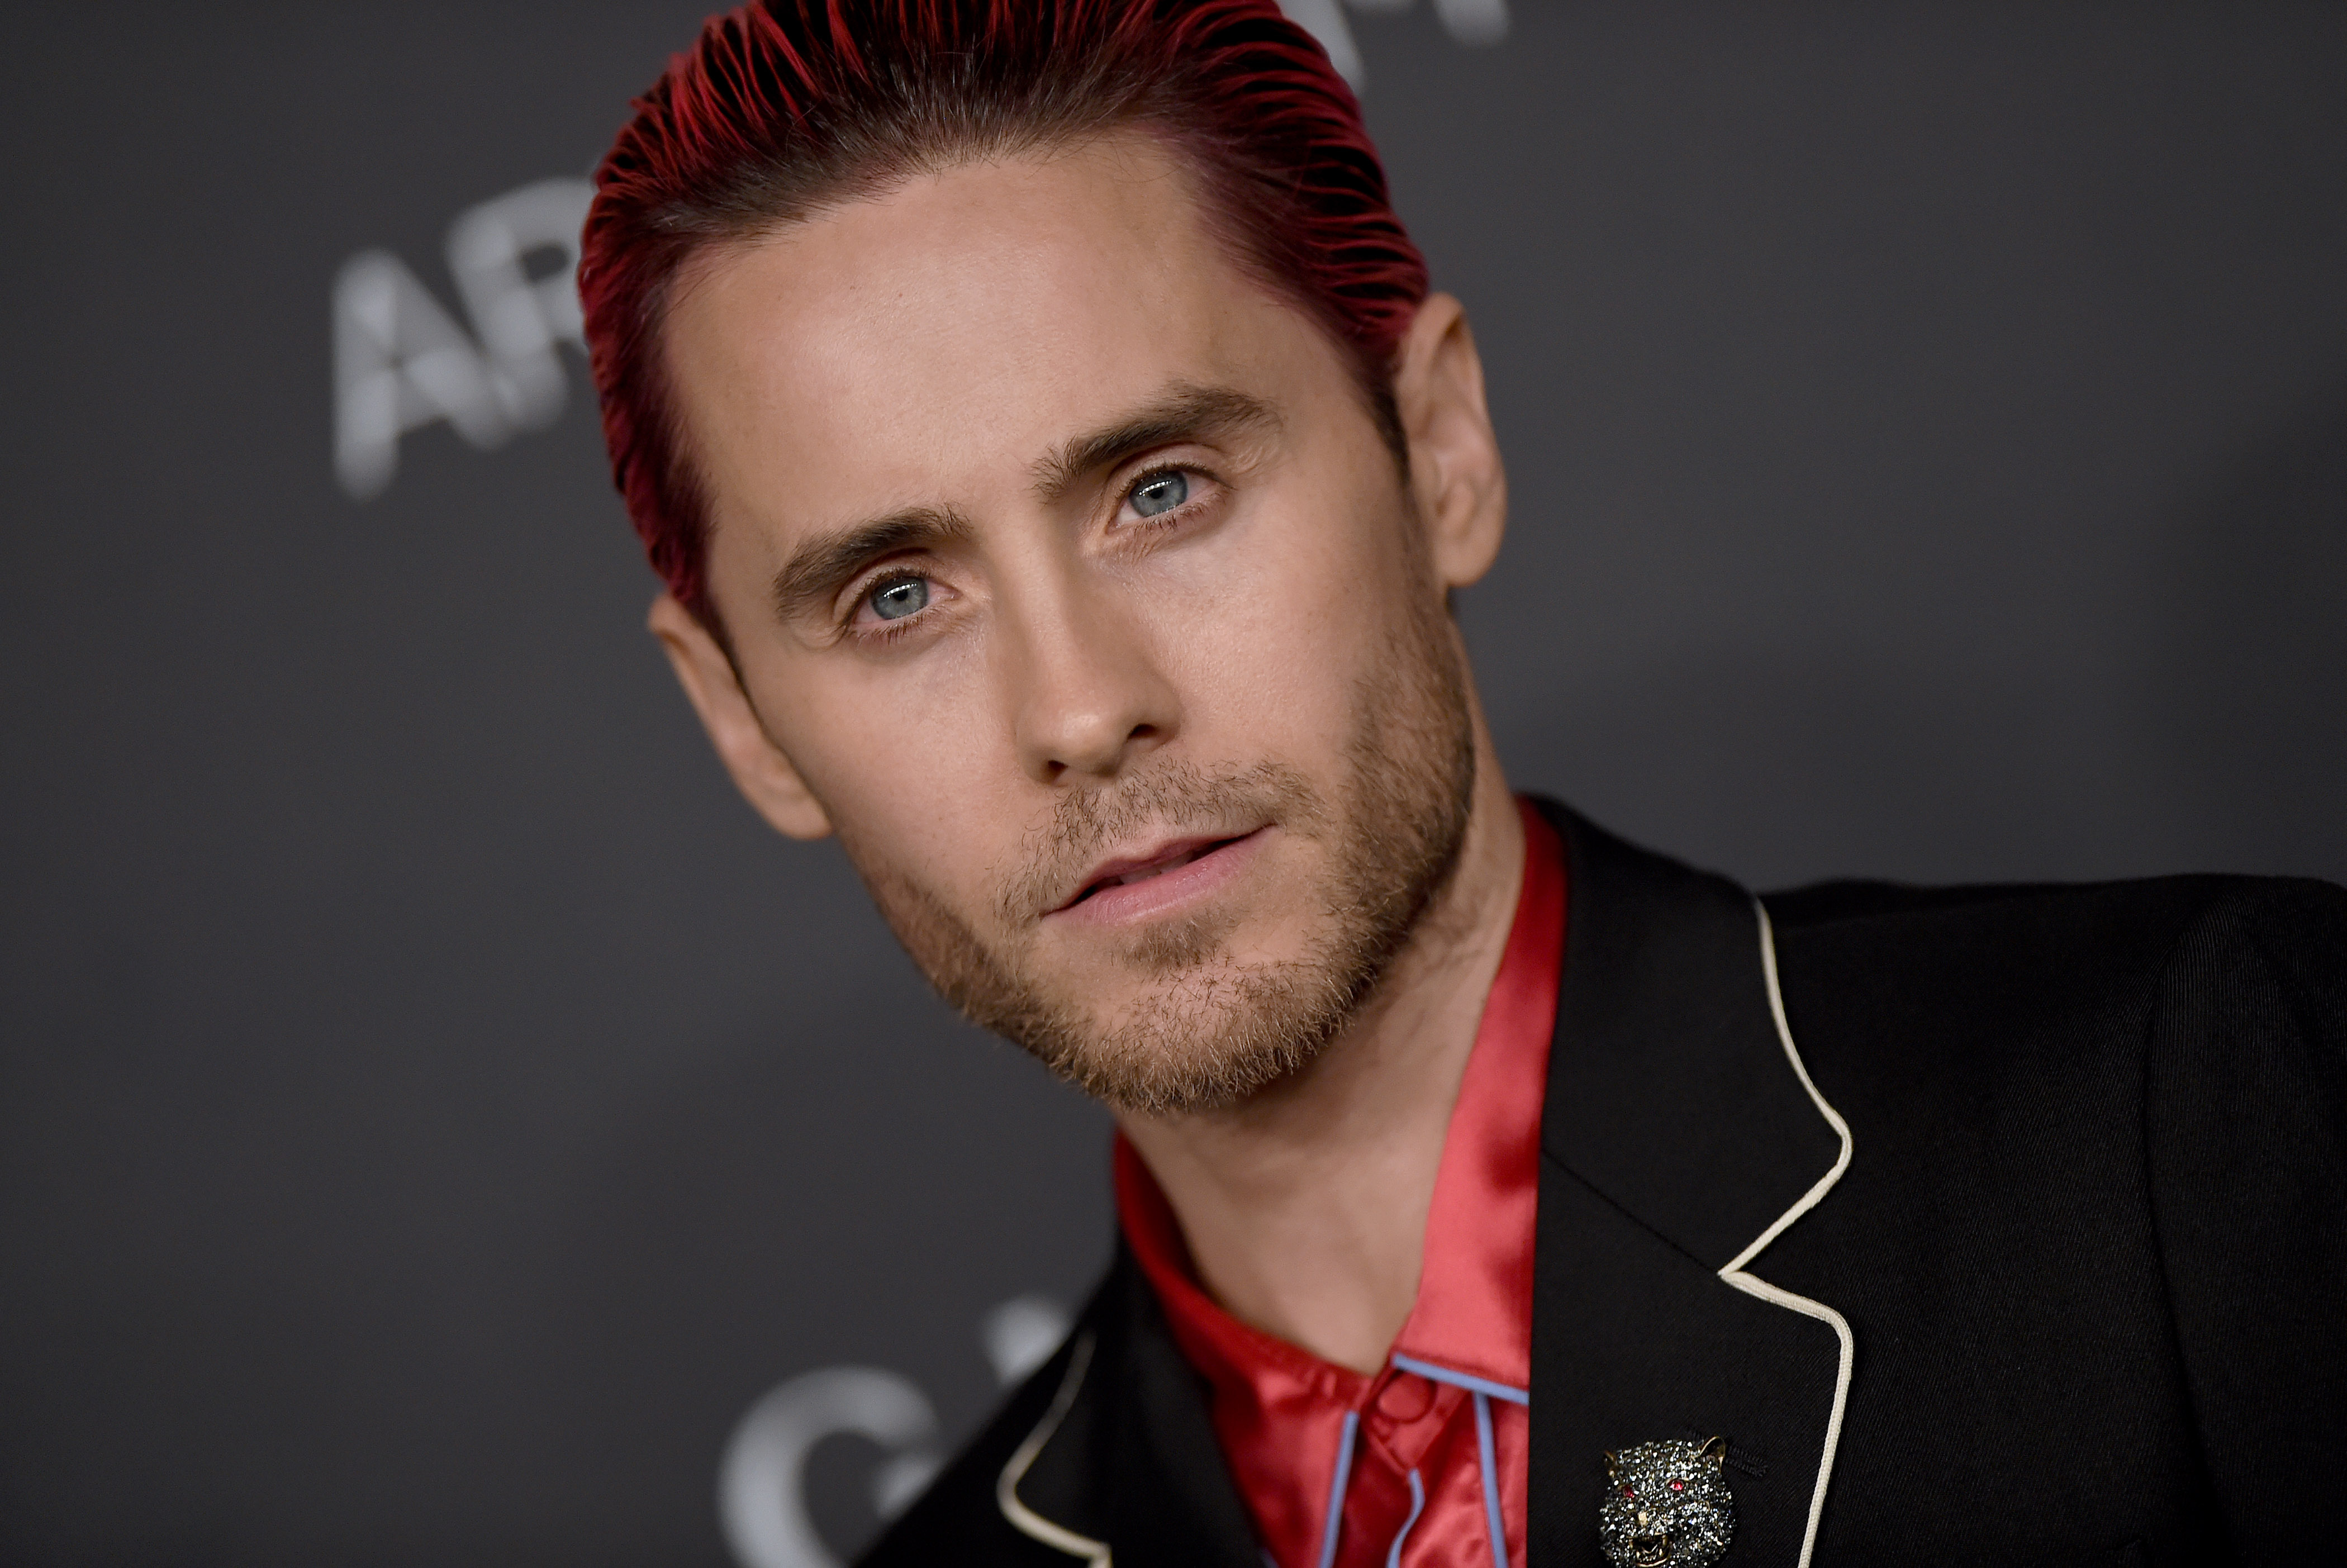 <b>JARED LETO JOINS RYA...</b>